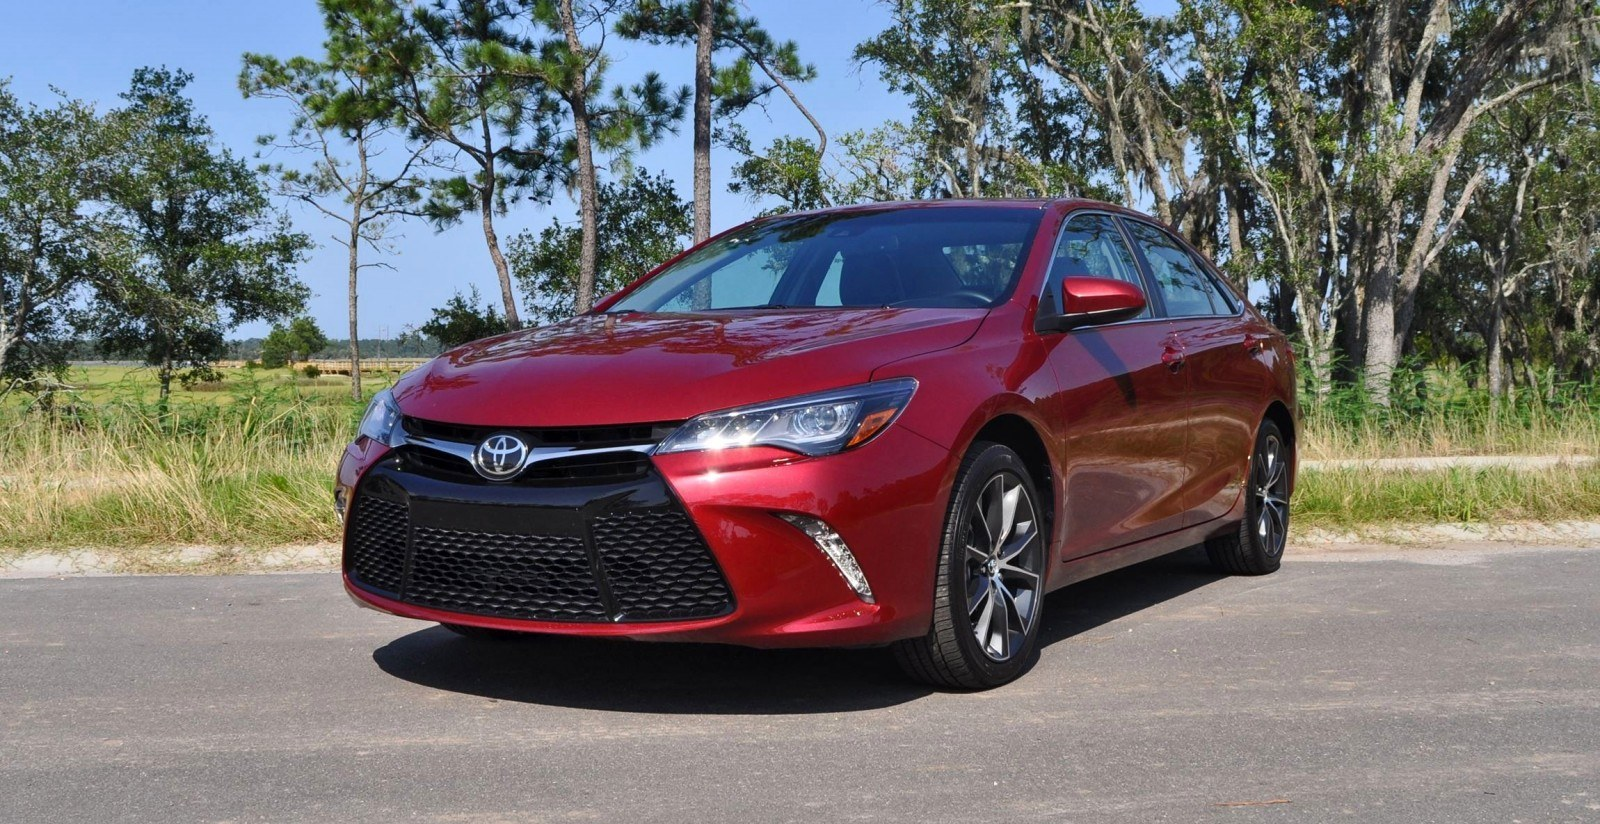 2015 toyota camry xse 2 5l review. Black Bedroom Furniture Sets. Home Design Ideas